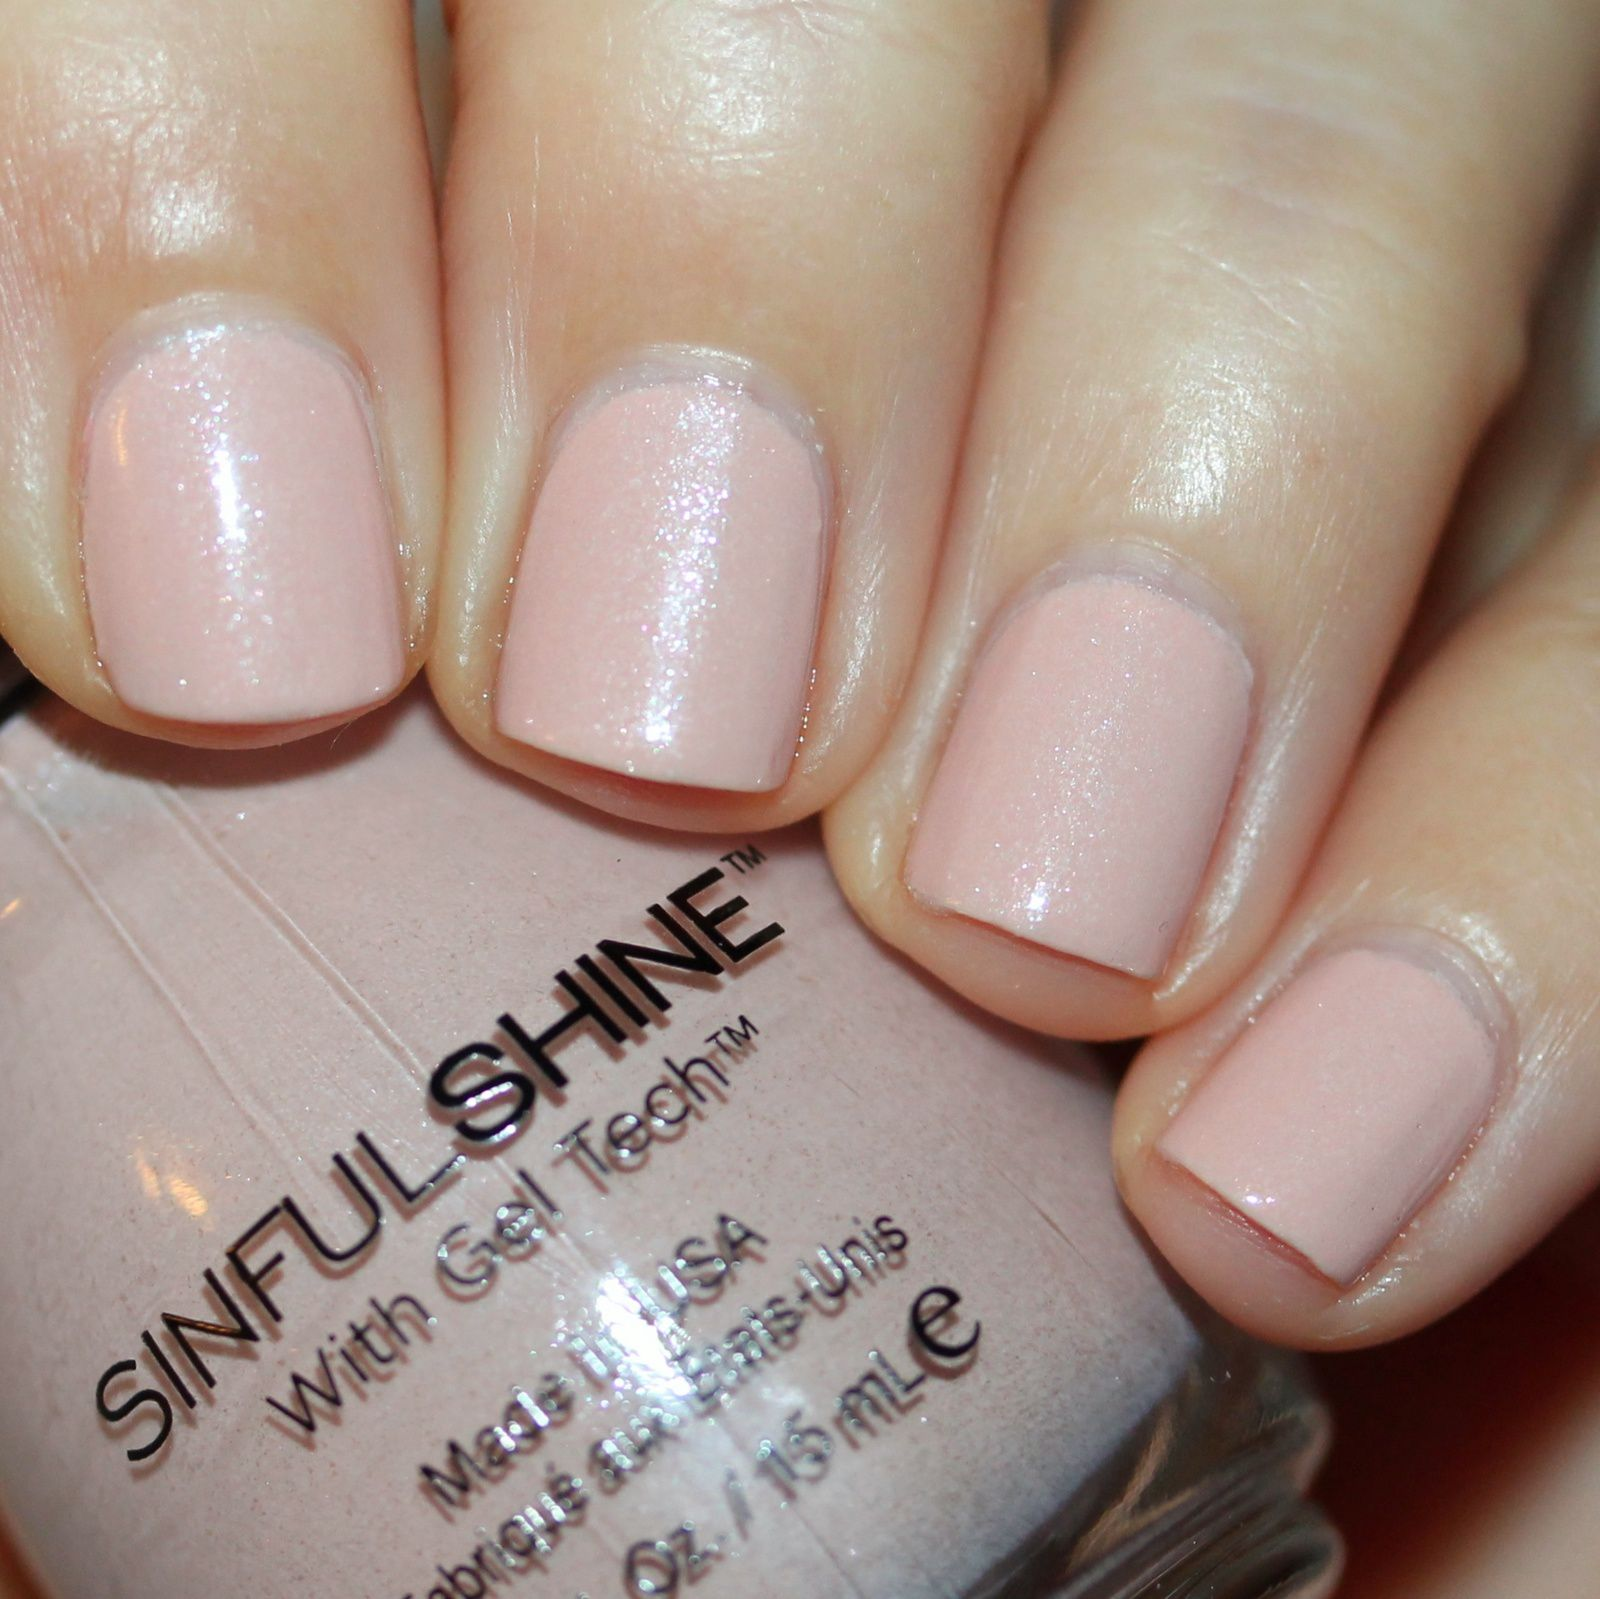 Duri Rejuvacote / Sinful Colors Kommando / HK Girl Top Coat